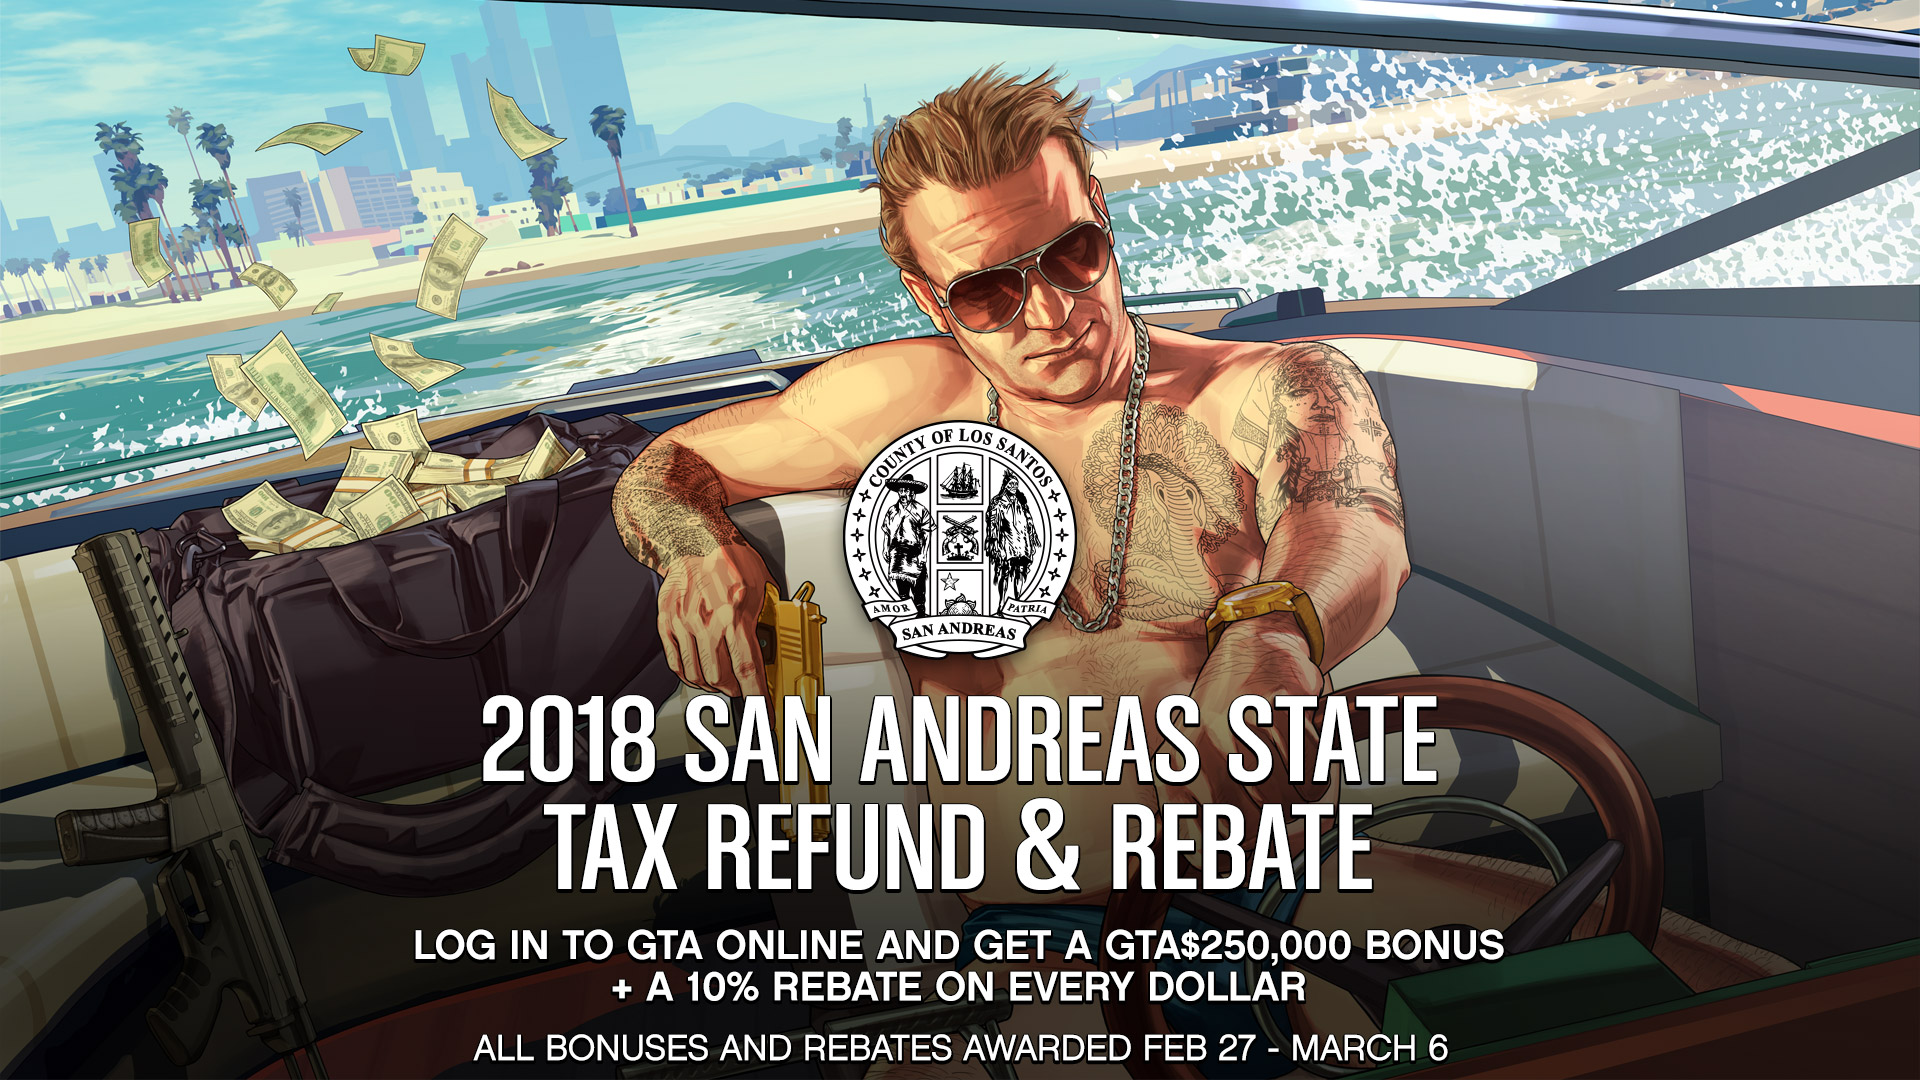 """Official GTA Online tax refund and rebate promotional image. It reads: """"2018 San Andreas State Tax Refund & Rebate. Log in to GTA Online and get a GTA$250,000 bonus + a 10% rebate on every dollar. All bonuses and rebates awarded Feb 27-March 6"""